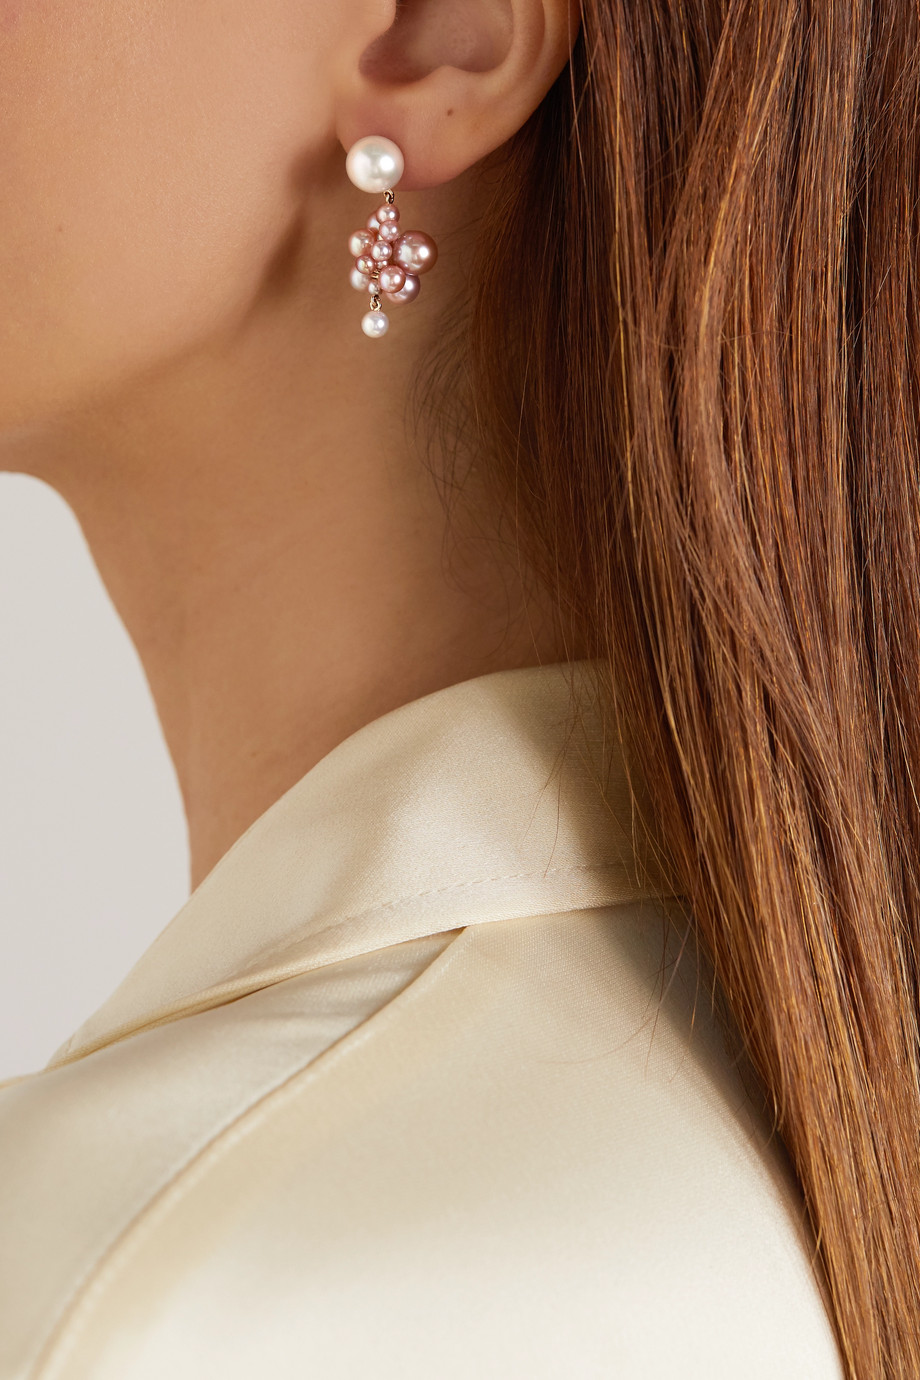 Sophie Bille Brahe Botticelli Rose 14-karat gold pearl earrings